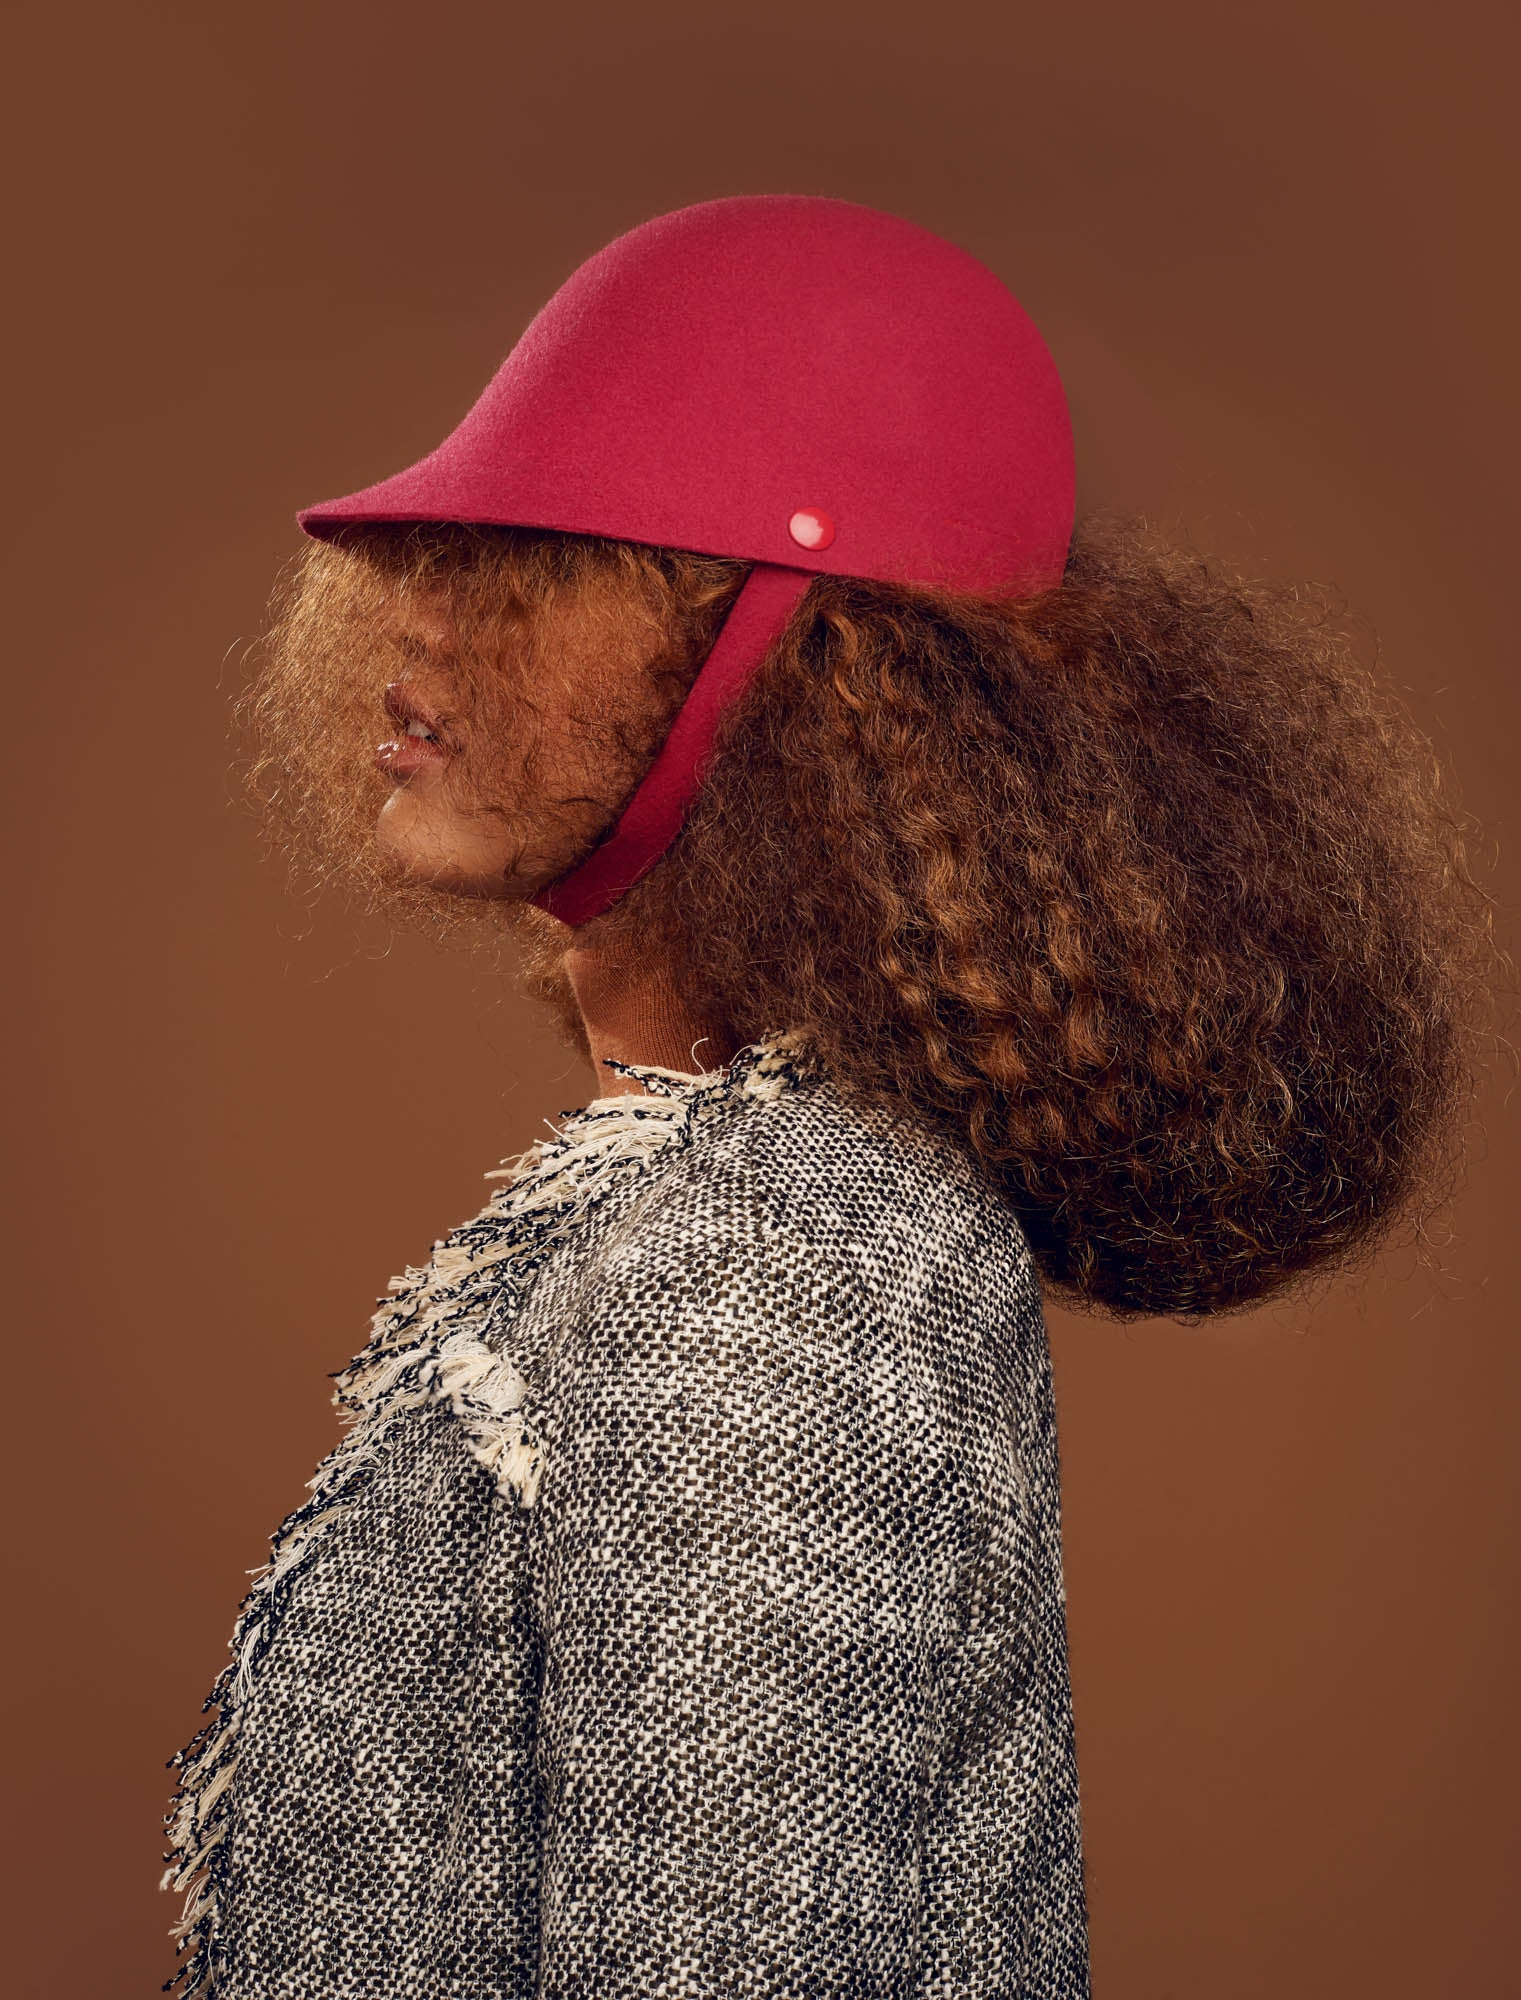 The Chief hat fits the afro natural hair of the model.